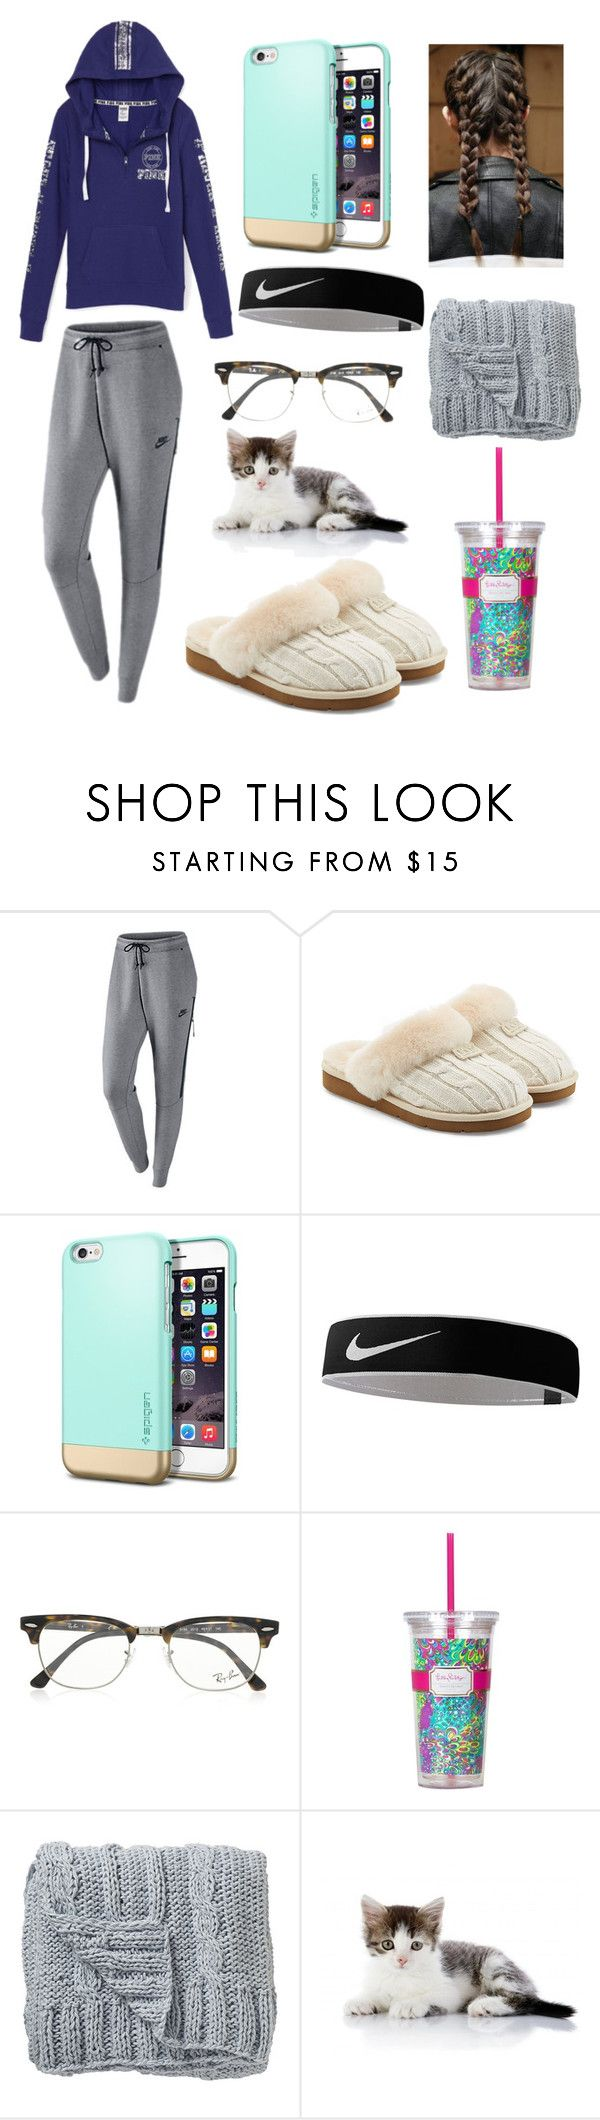 """""""Lazy Day"""" by idekwhattonamethis ❤ liked on Polyvore featuring NIKE, Victoria's Secret, UGG Australia, Ray-Ban, Lilly Pulitzer and Bloomingville"""